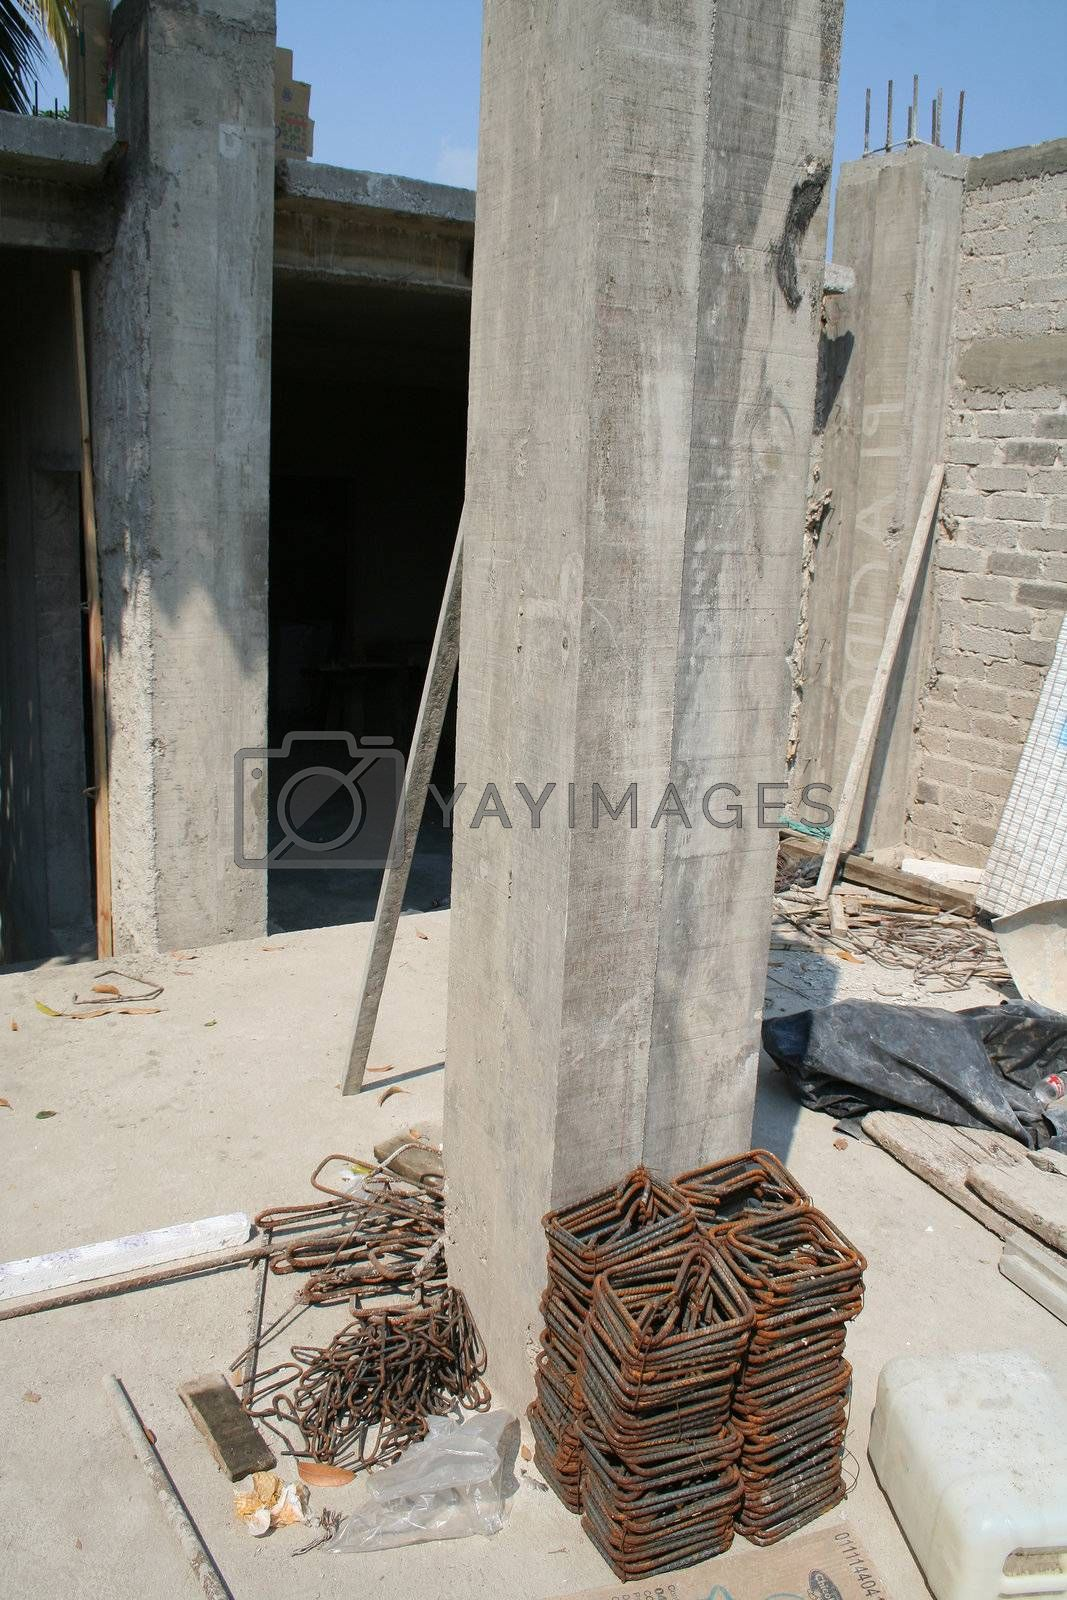 Concrete construction with materials